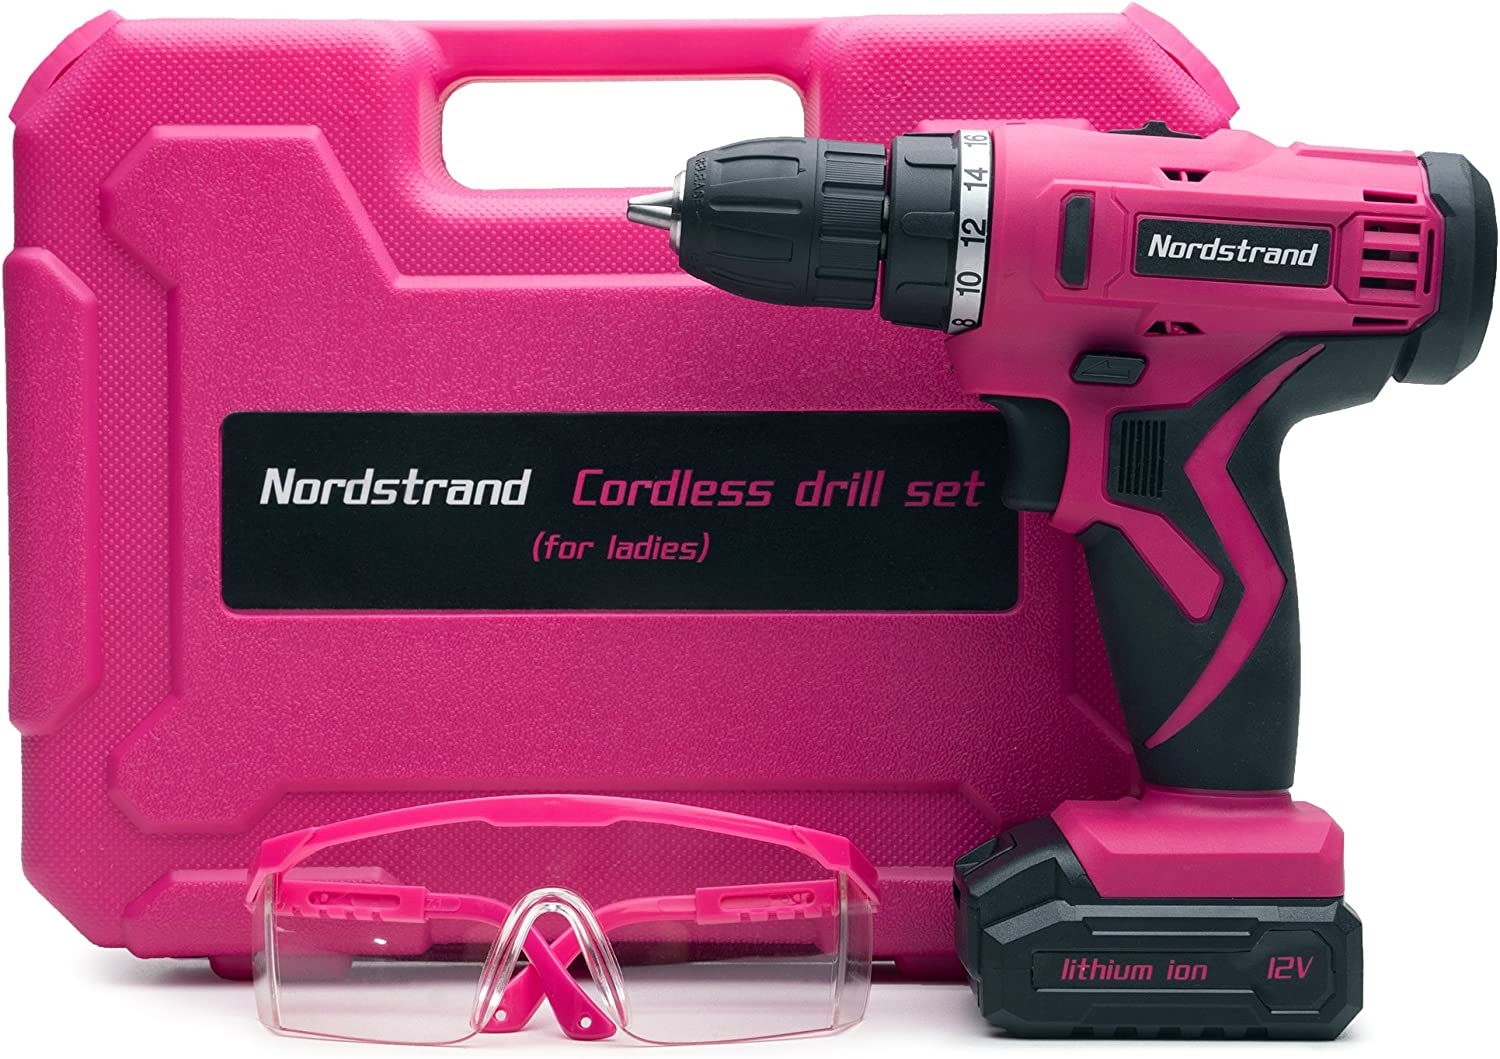 Nordstrand Cordless Drill